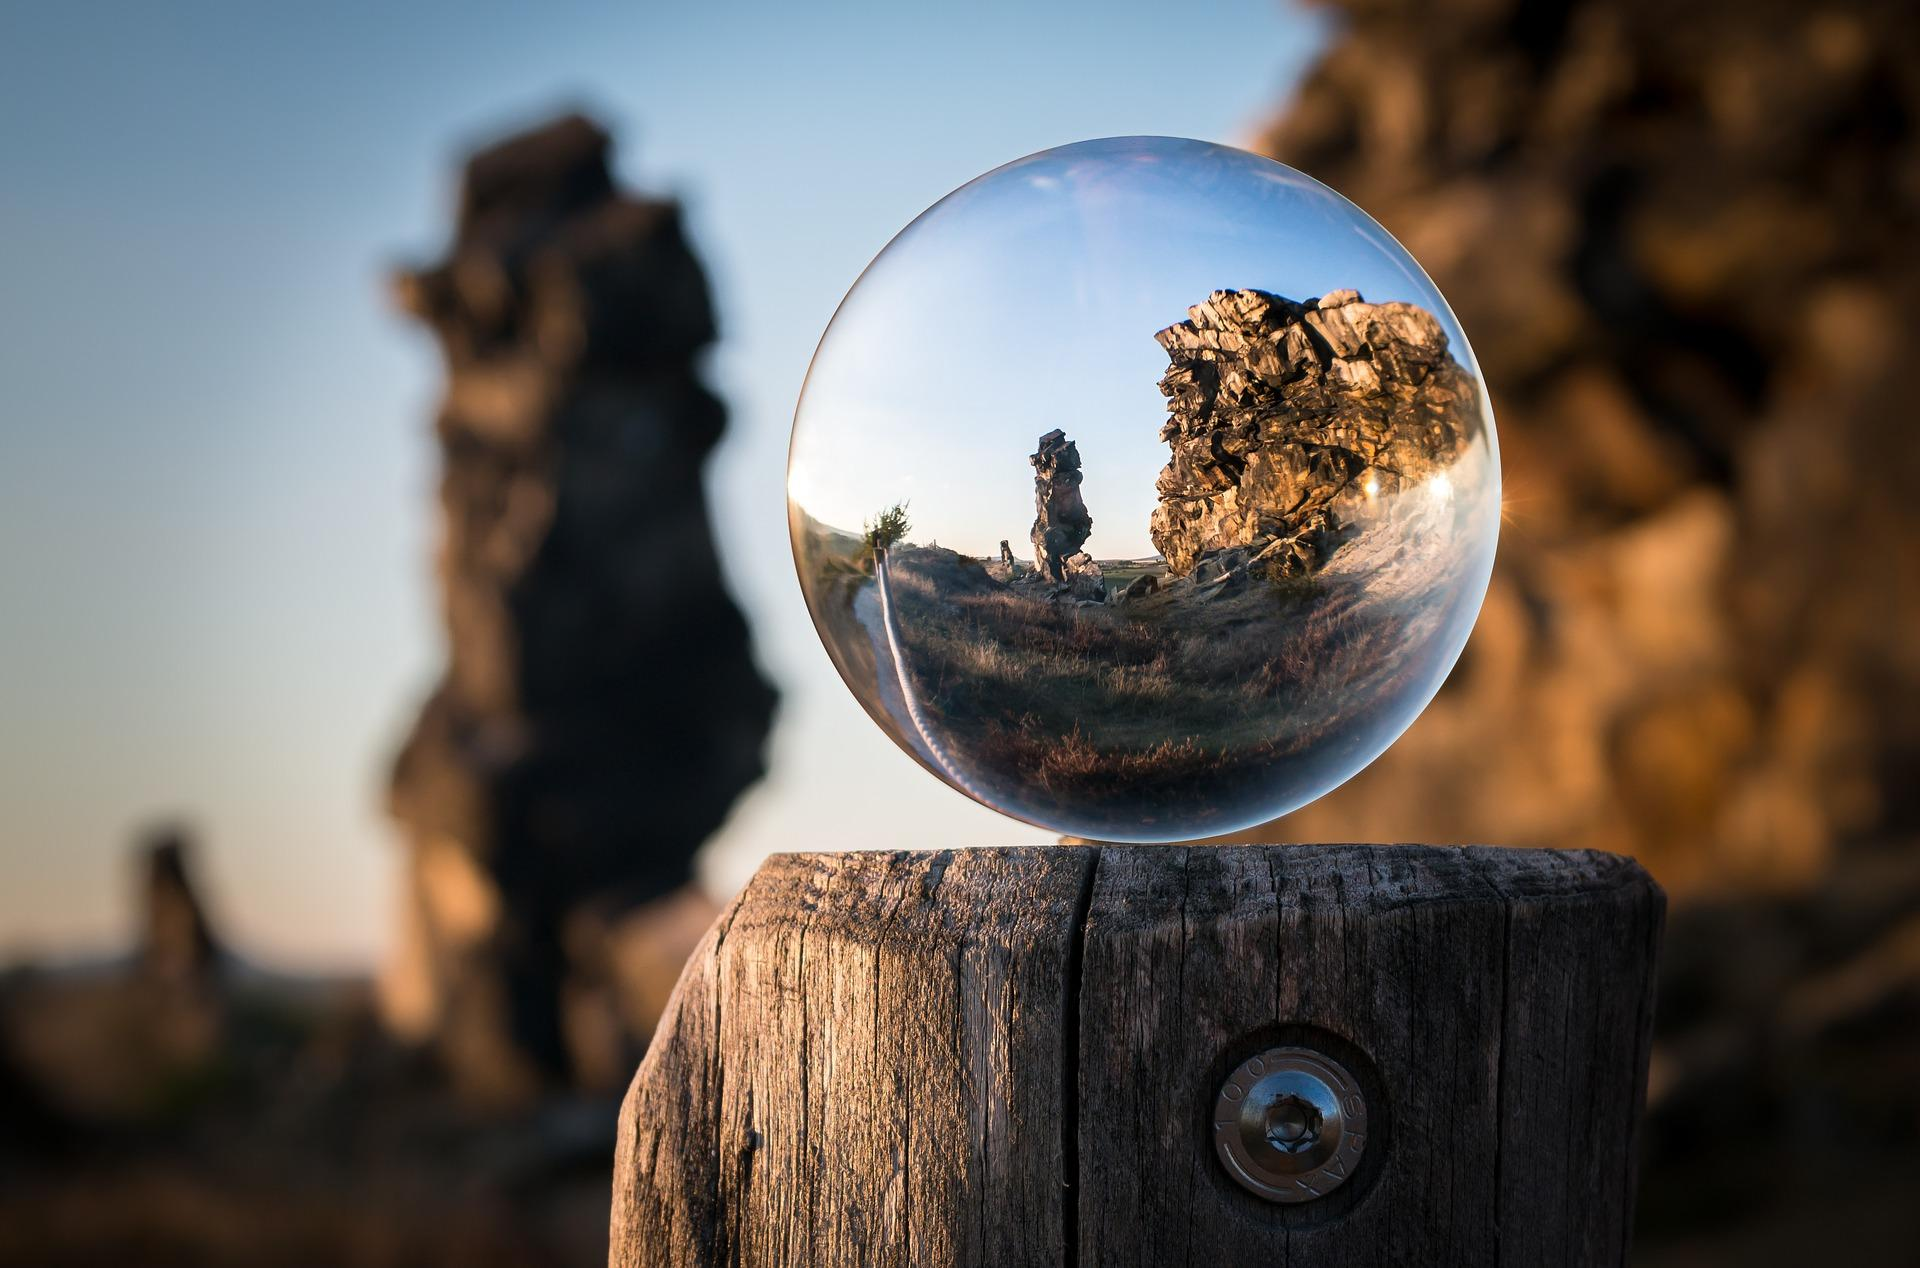 glass ball 1746506 1920 - Voyage intentionnel [3eme partie]